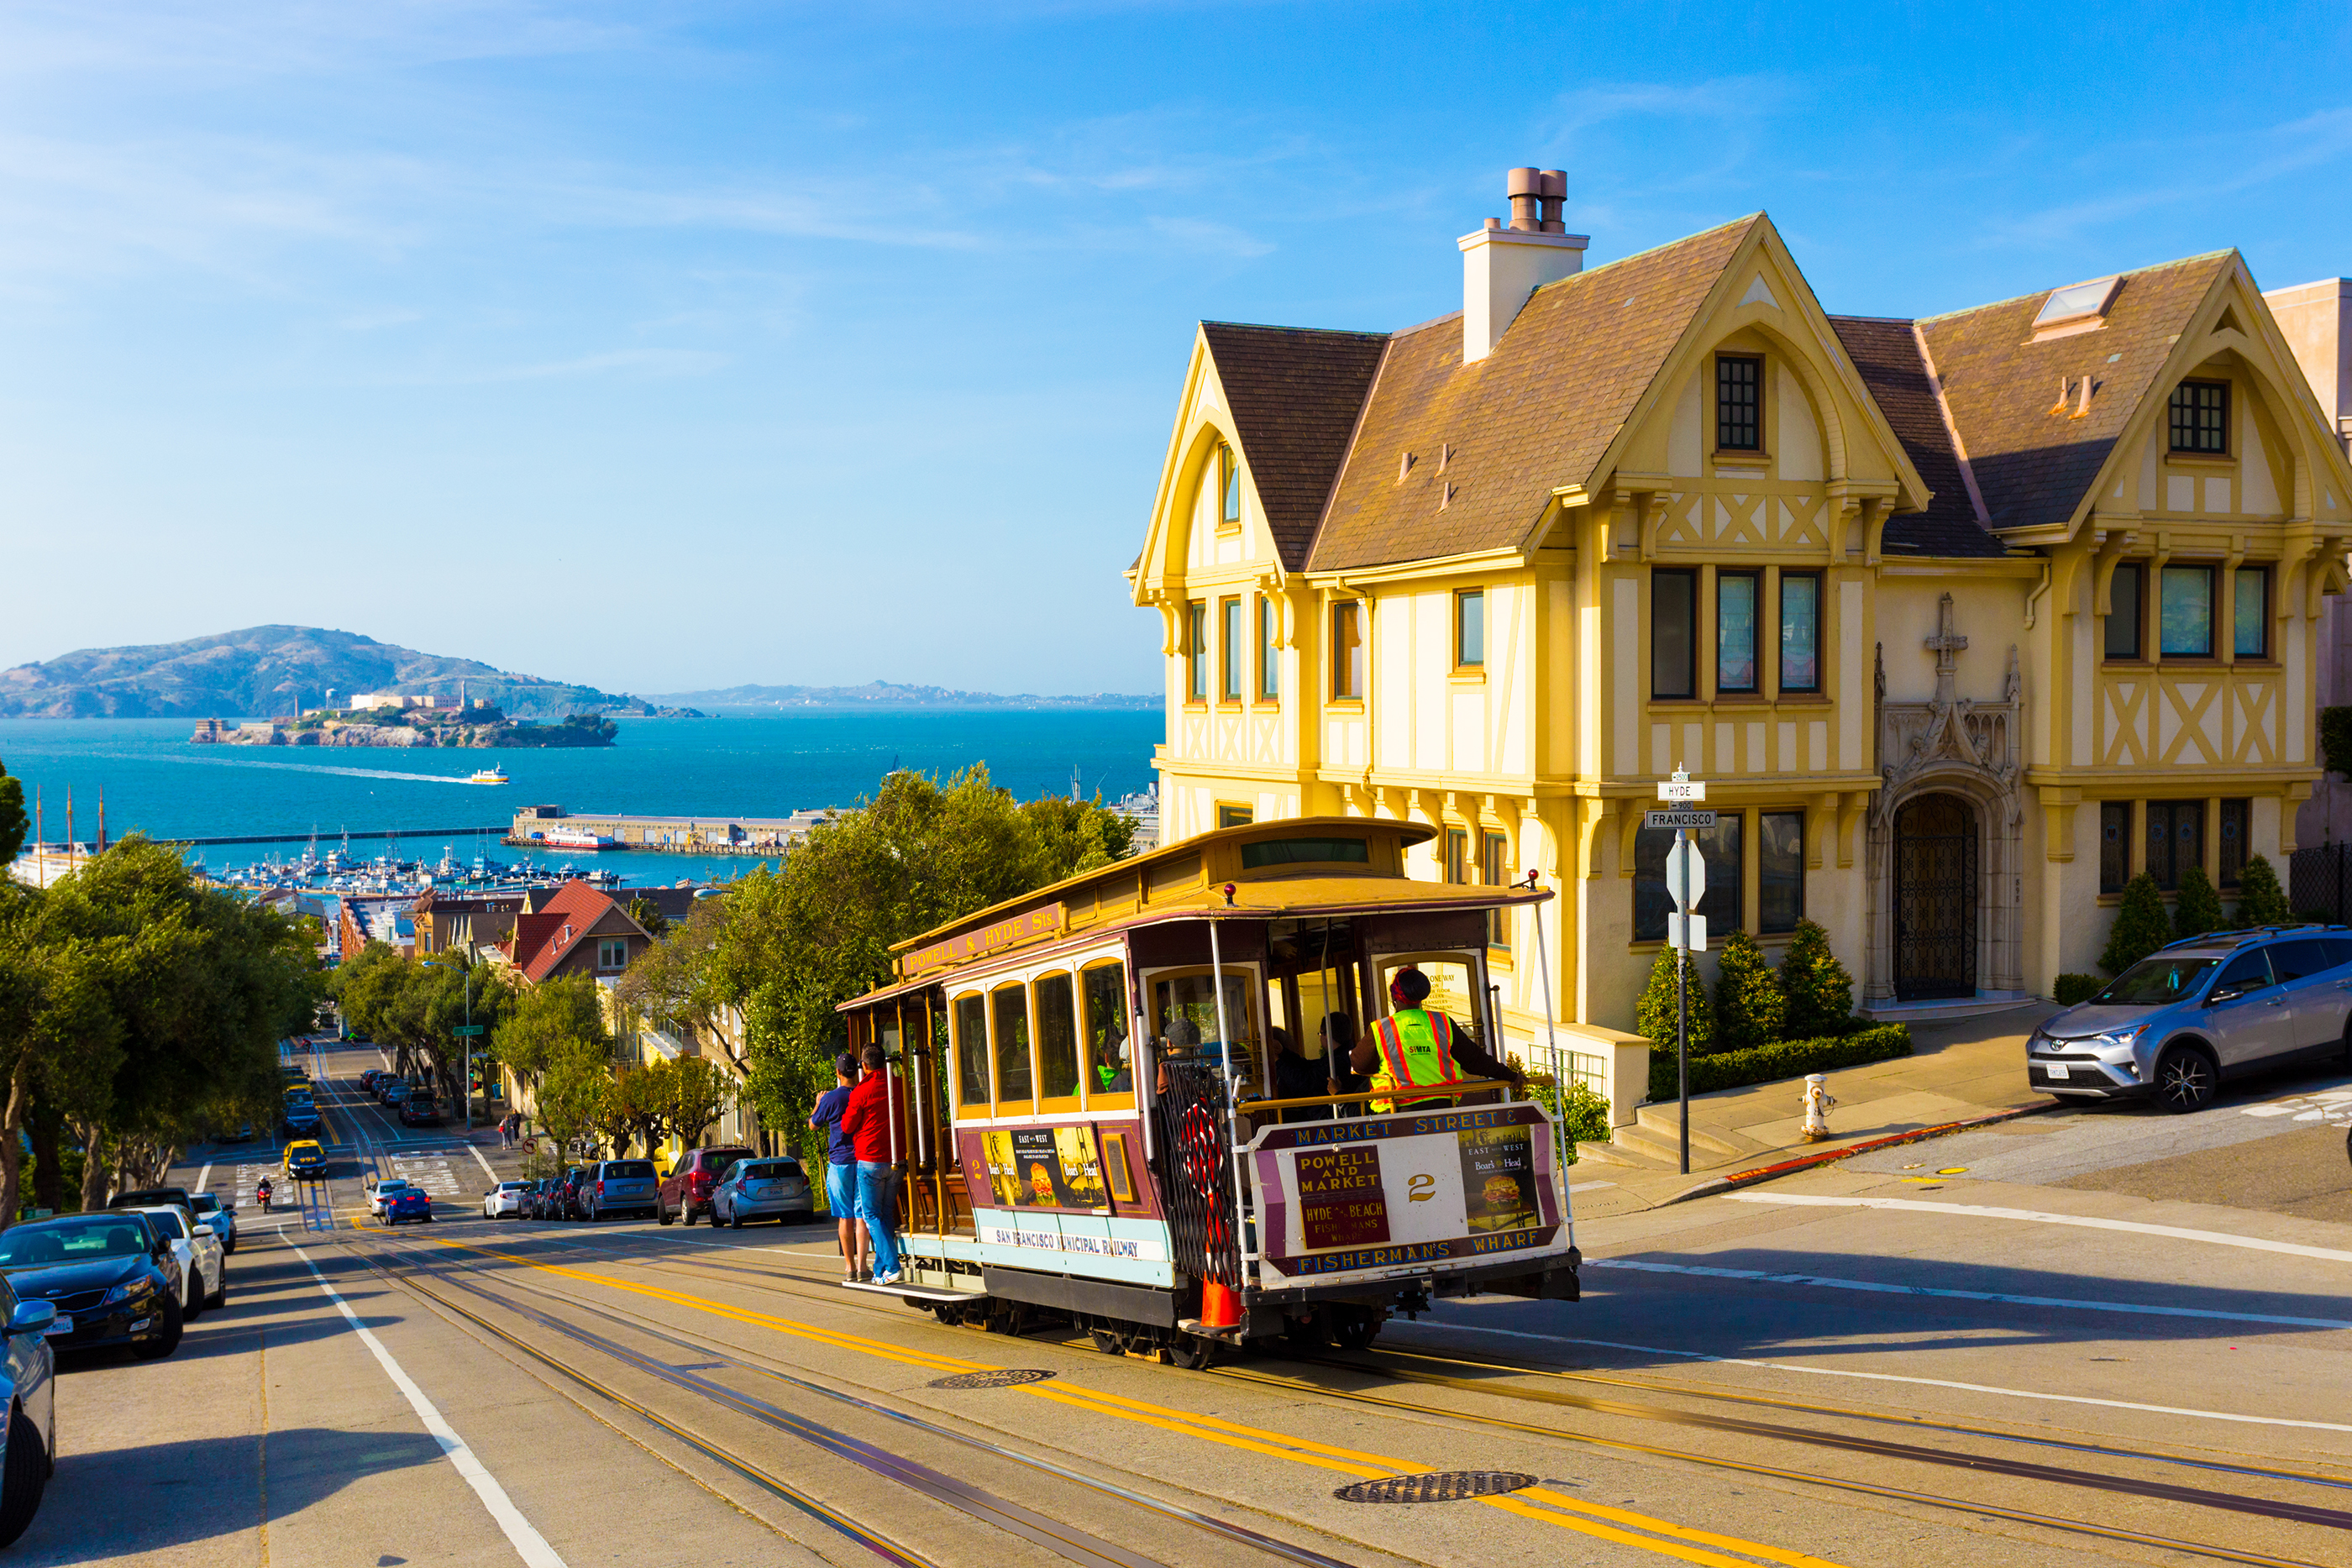 Combined scenic view of San Francisco Bay with Alcatraz, cable car, Victorian houses, typical iconic siteseeing landmarks and tourist attractions of the city